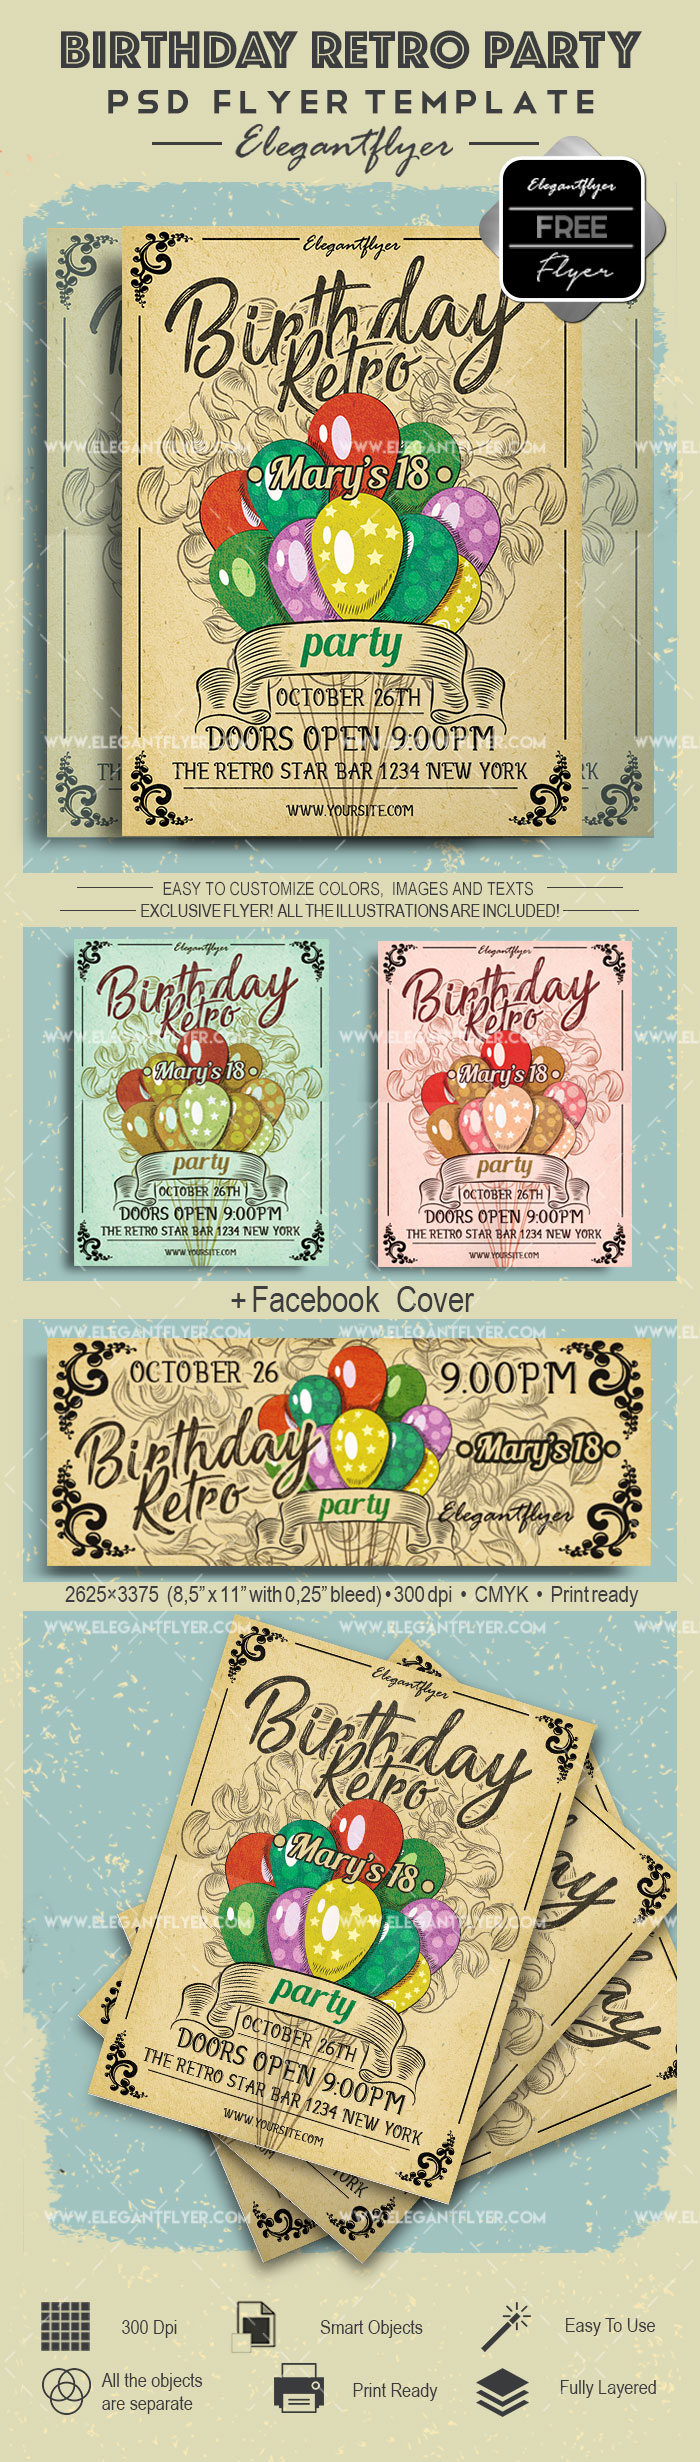 Birthday Retro Party- Free Flyer PSD Template